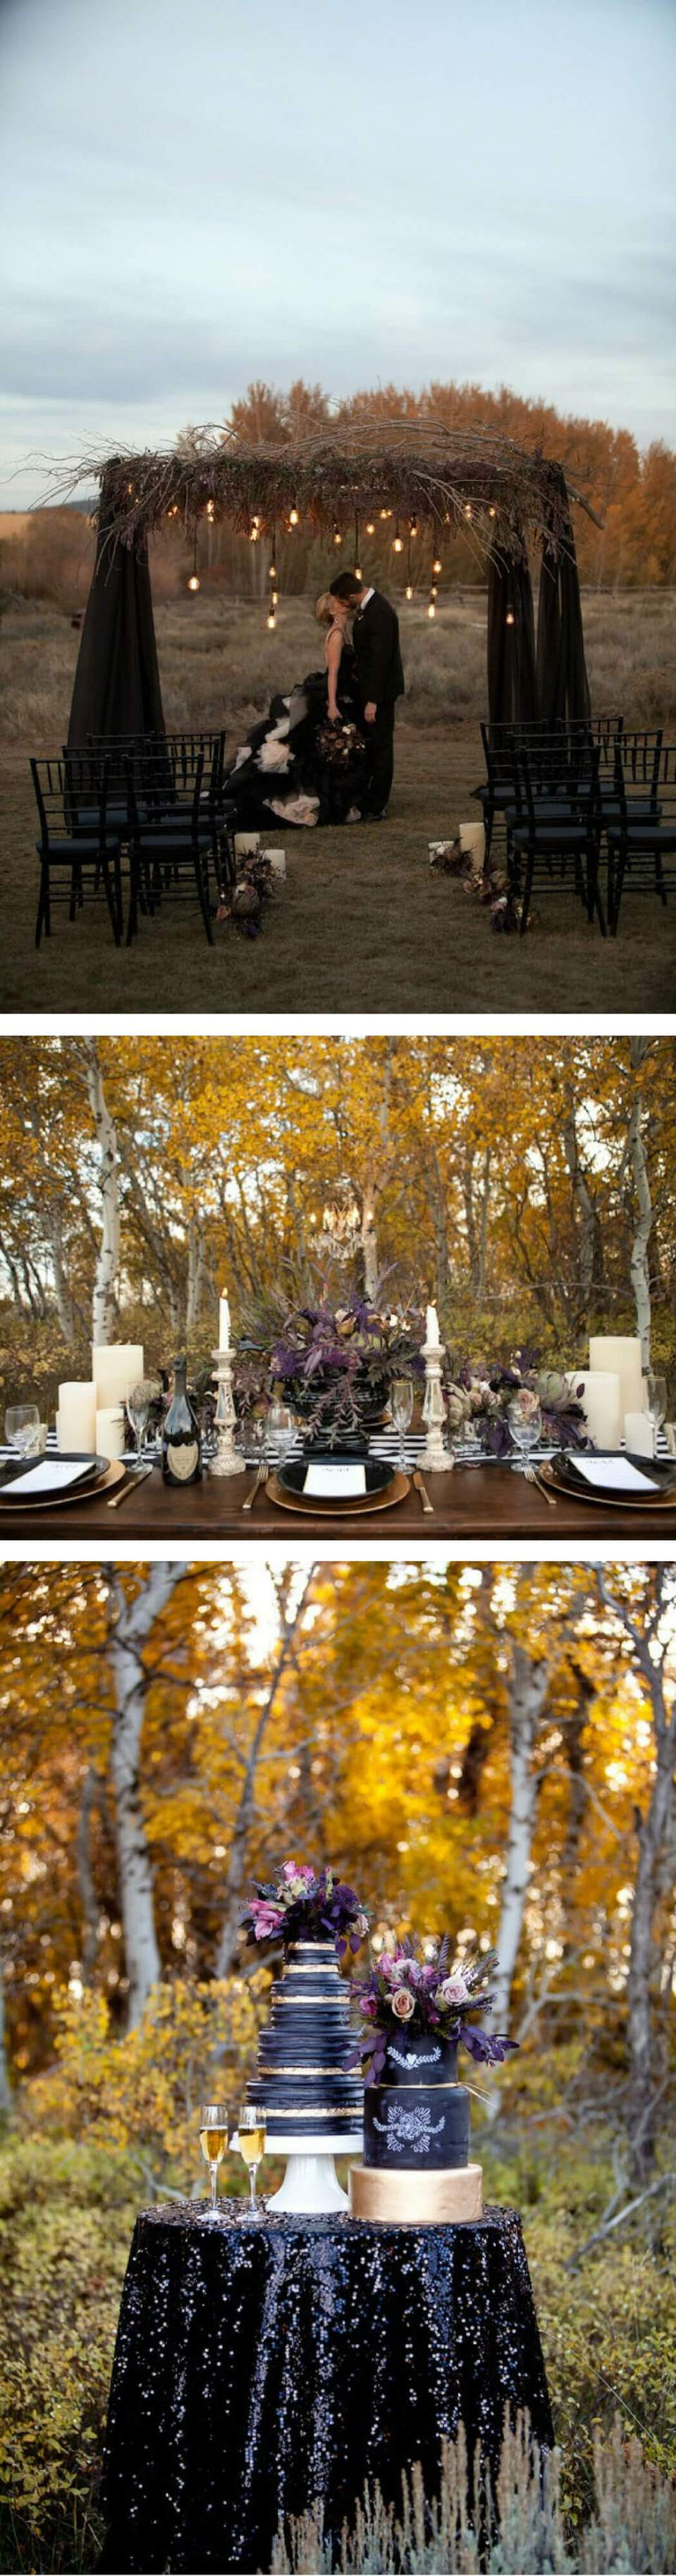 29 Spooky Halloween Wedding Theme Ideas For 2018 Farmfoodfamily